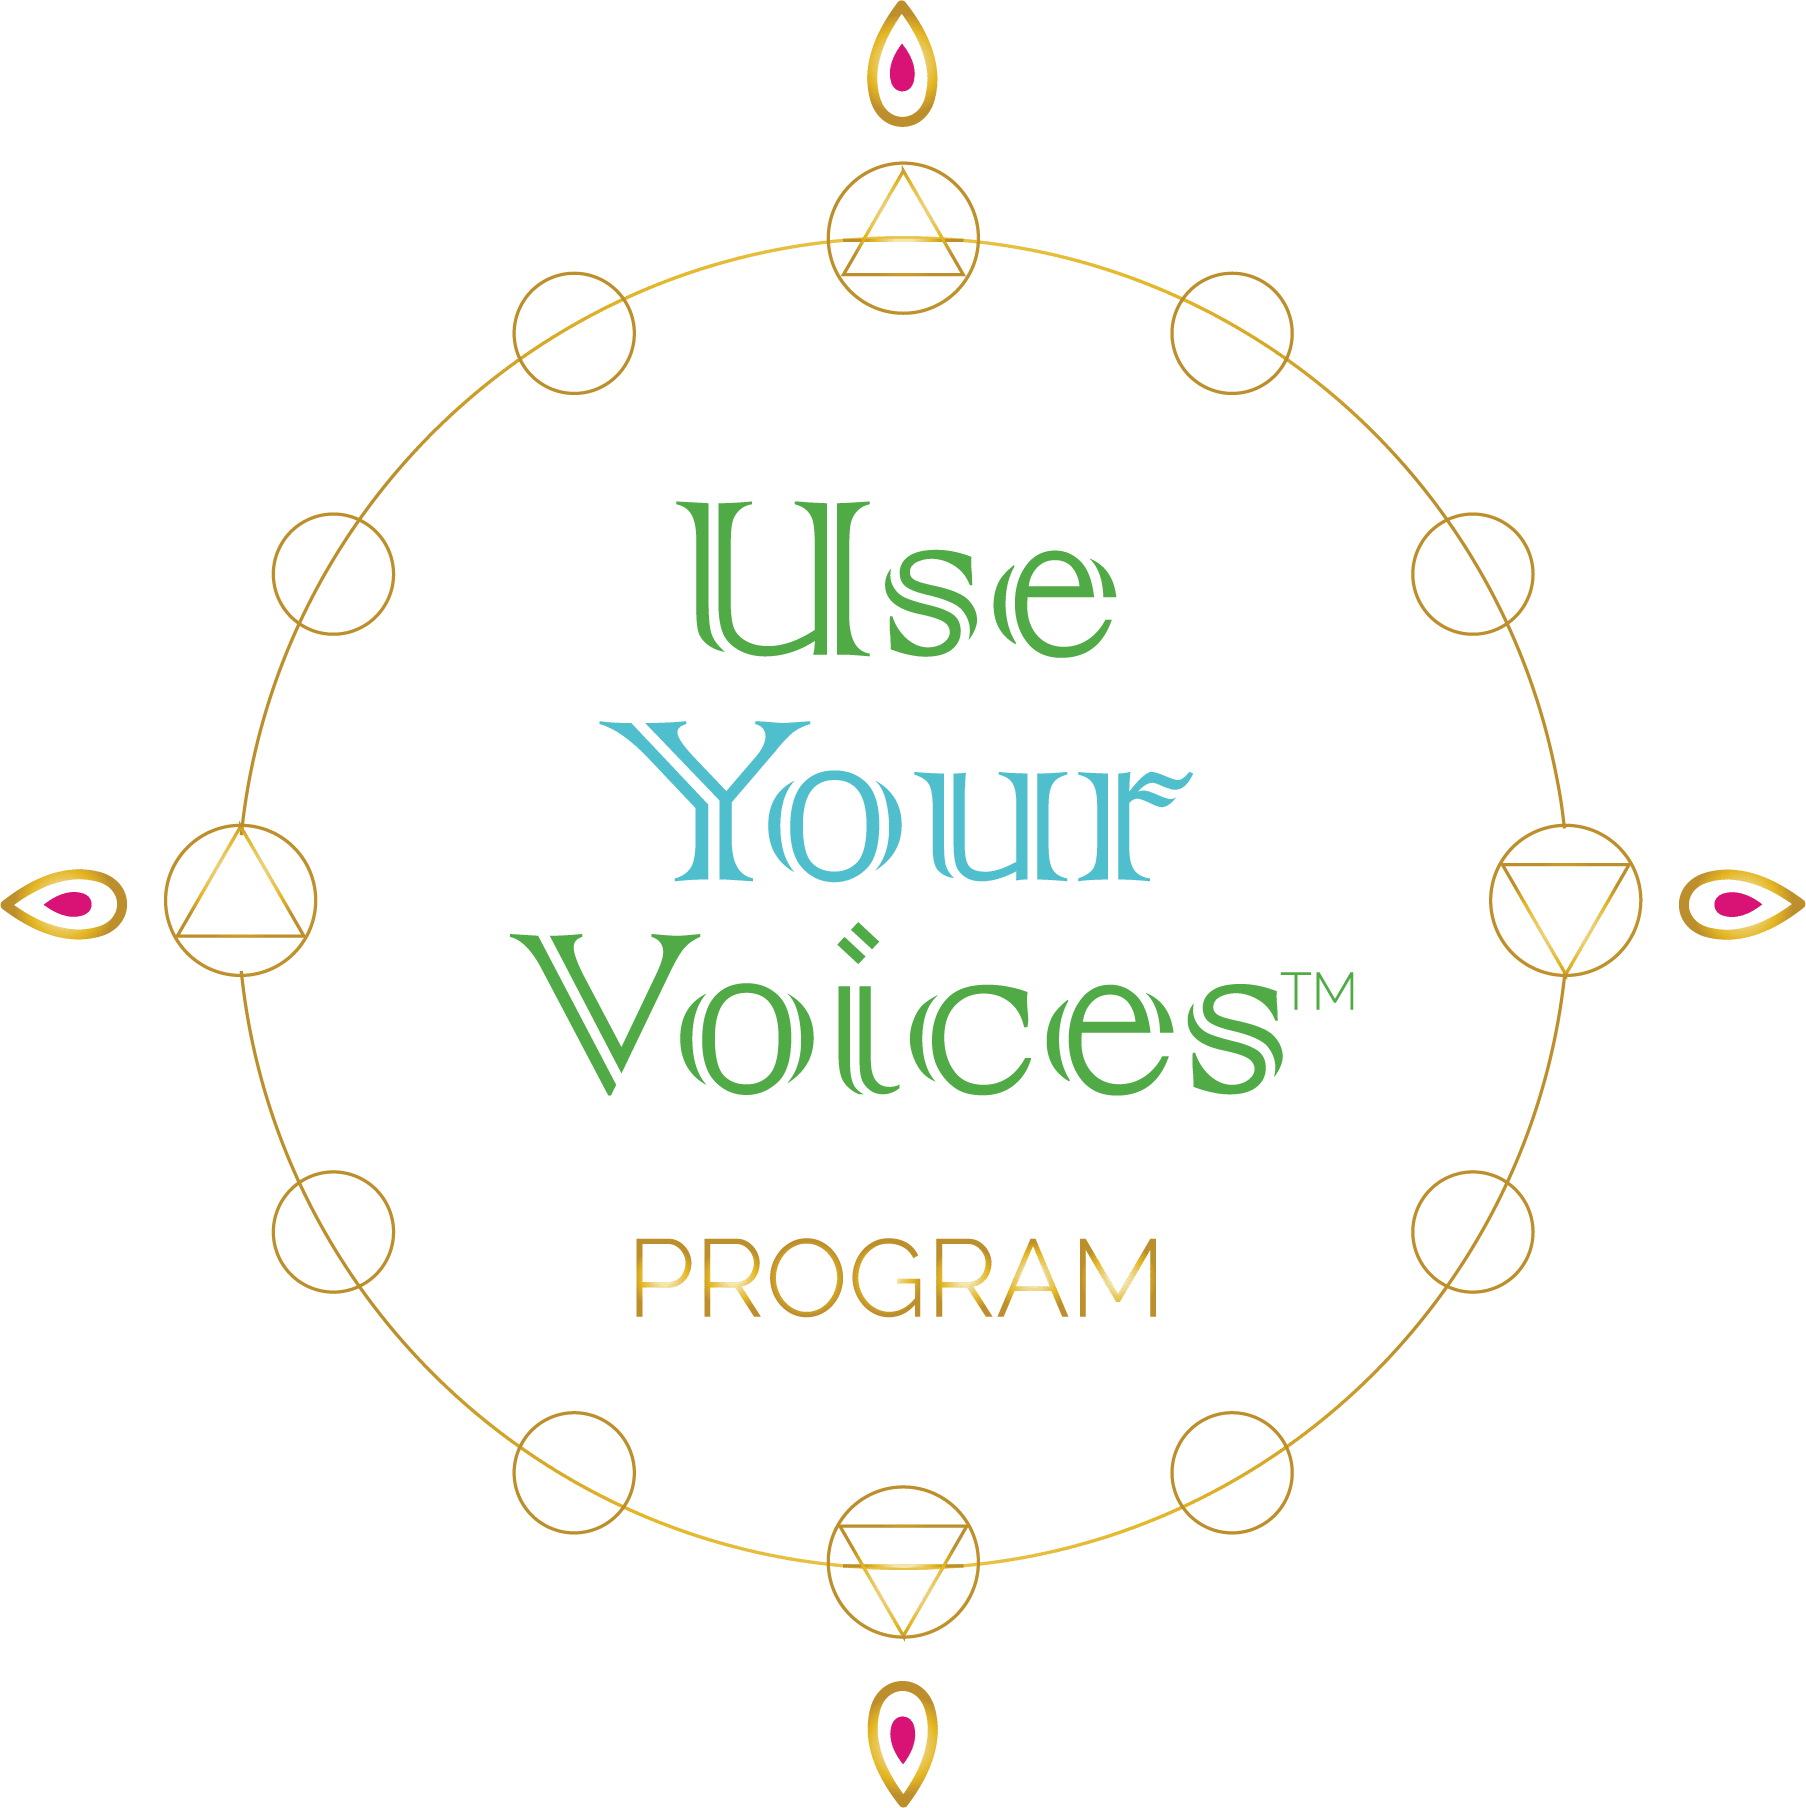 Use Your Voices Program